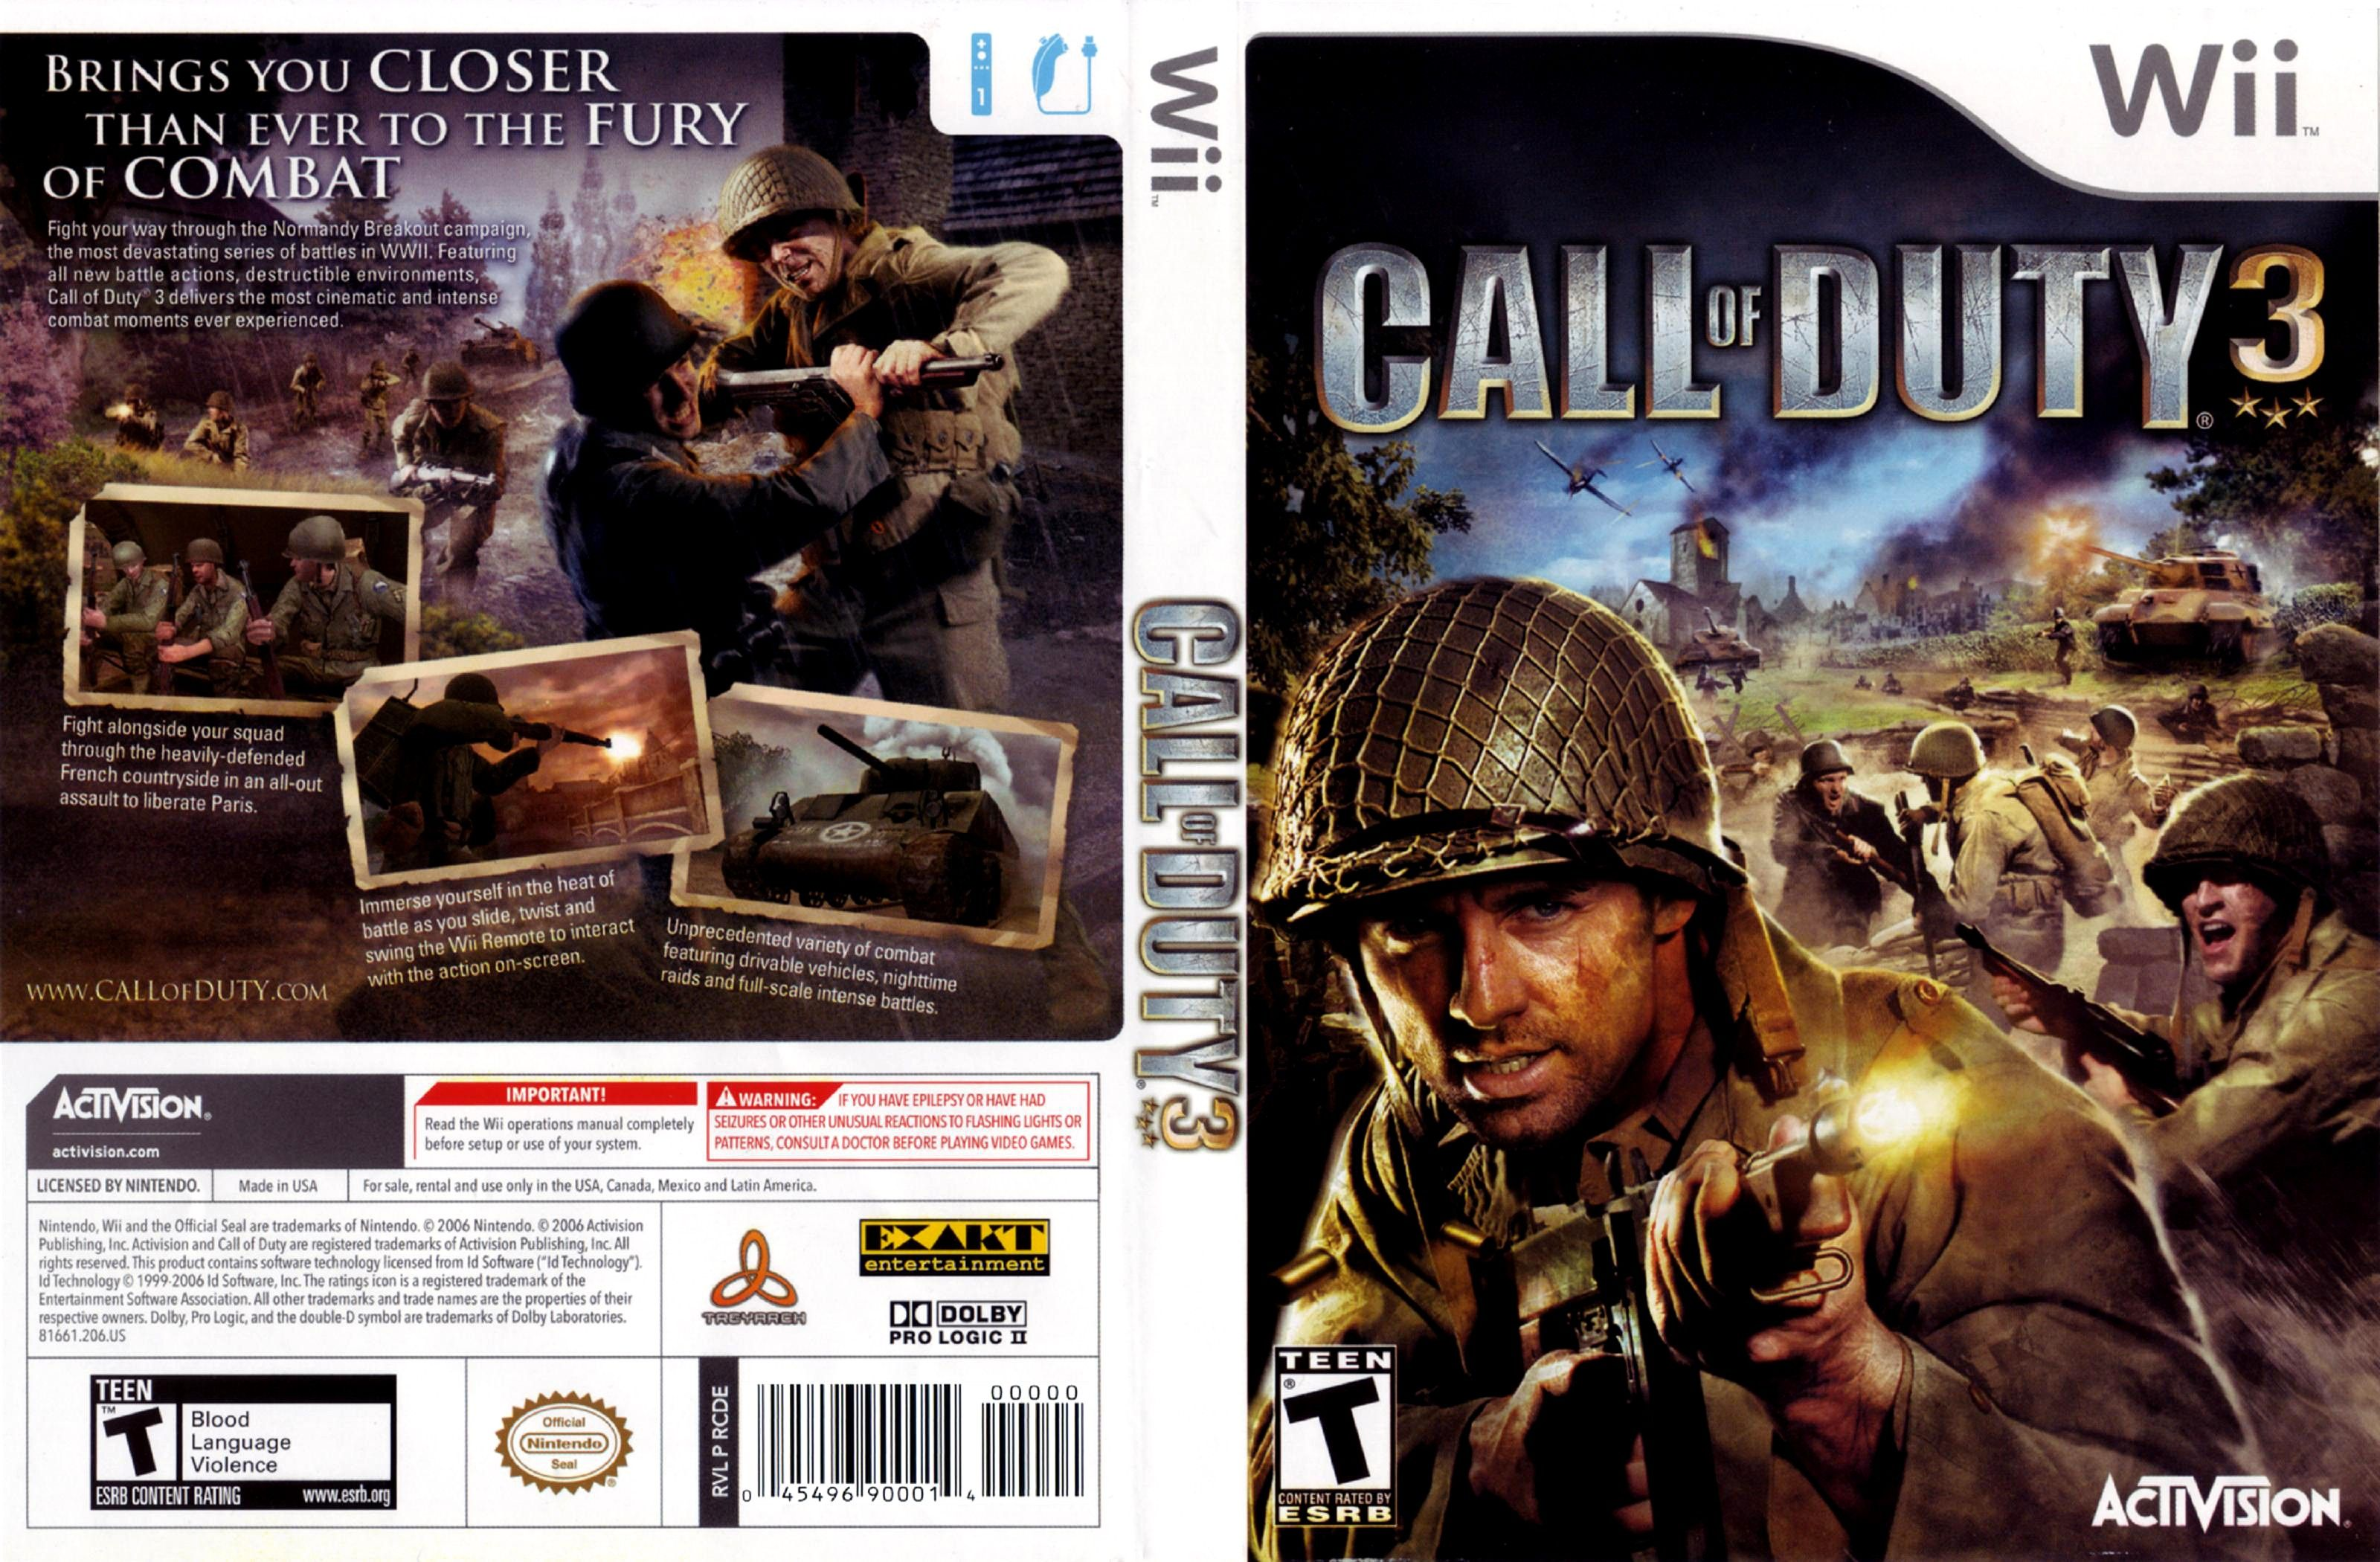 Call Of Duty 3 NTSC Wii FULL | Wii Covers | Cover Century